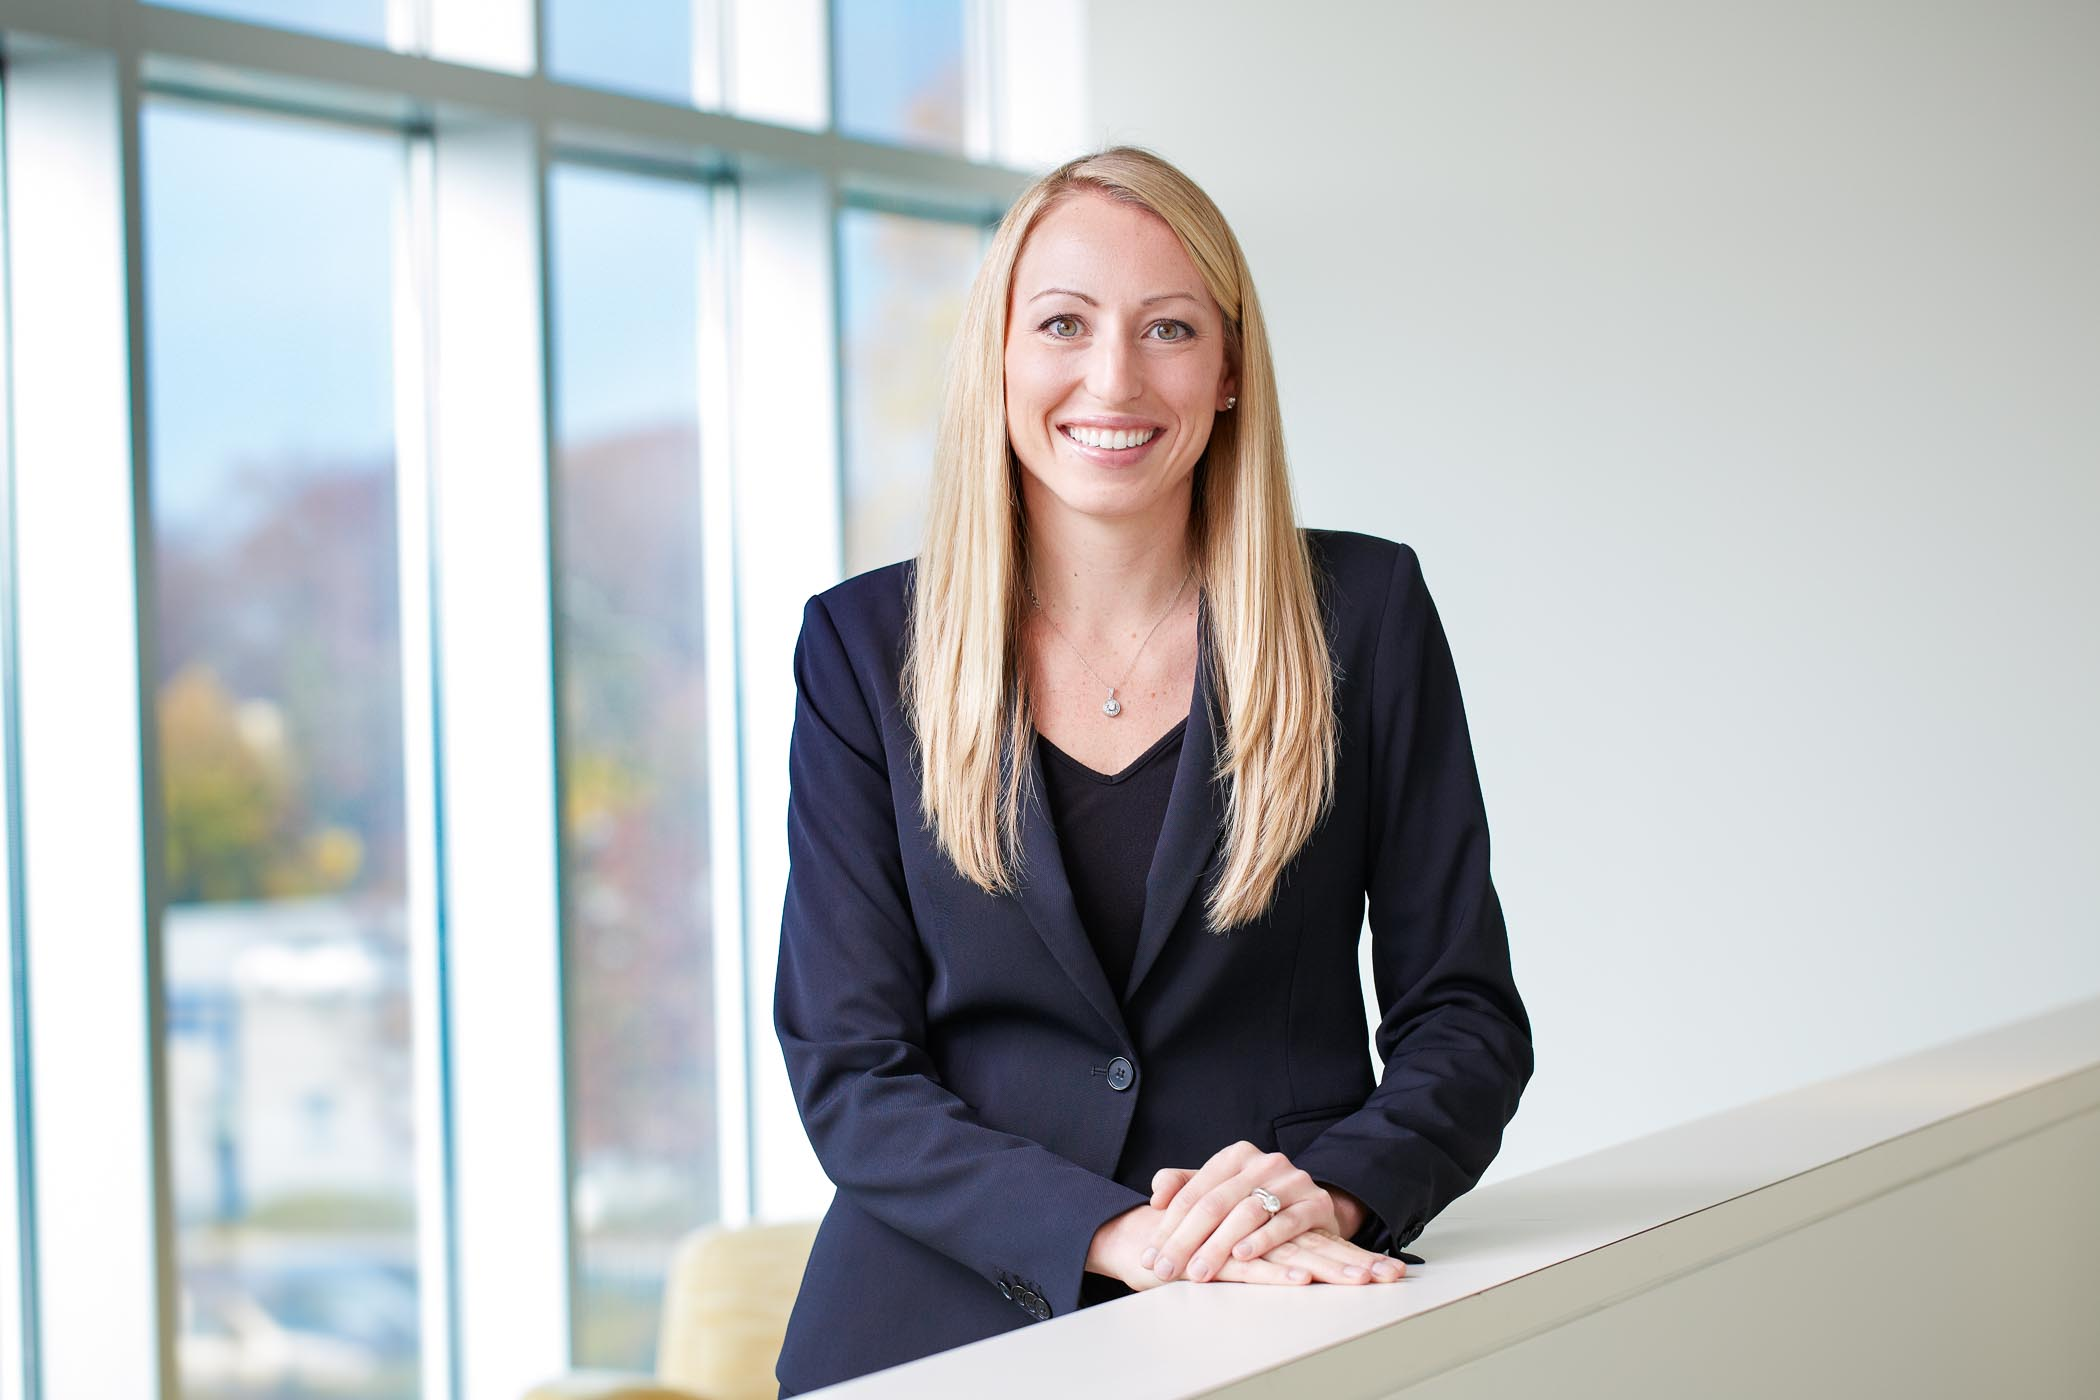 Corporate portrait on location for Fidelity Investments in Atlanta by photographer, Gregory Campbell